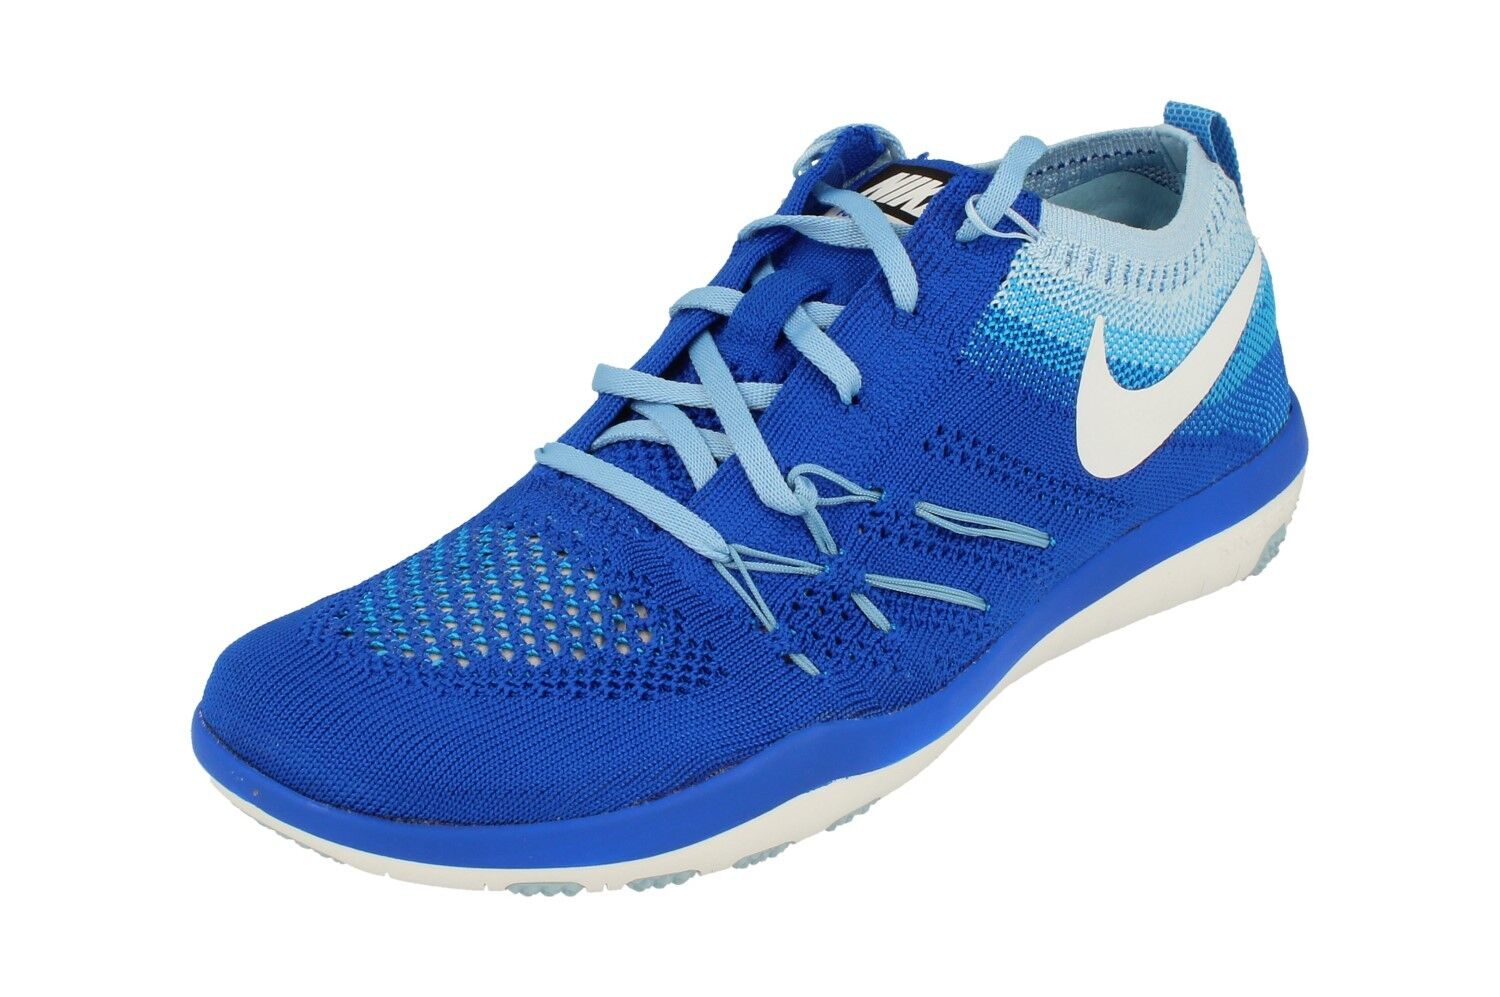 Zapatos promocionales para hombres y mujeres Nike Womens Free TR Focus Flyknit Running Trainers 844817 401 Sneakers Shoes